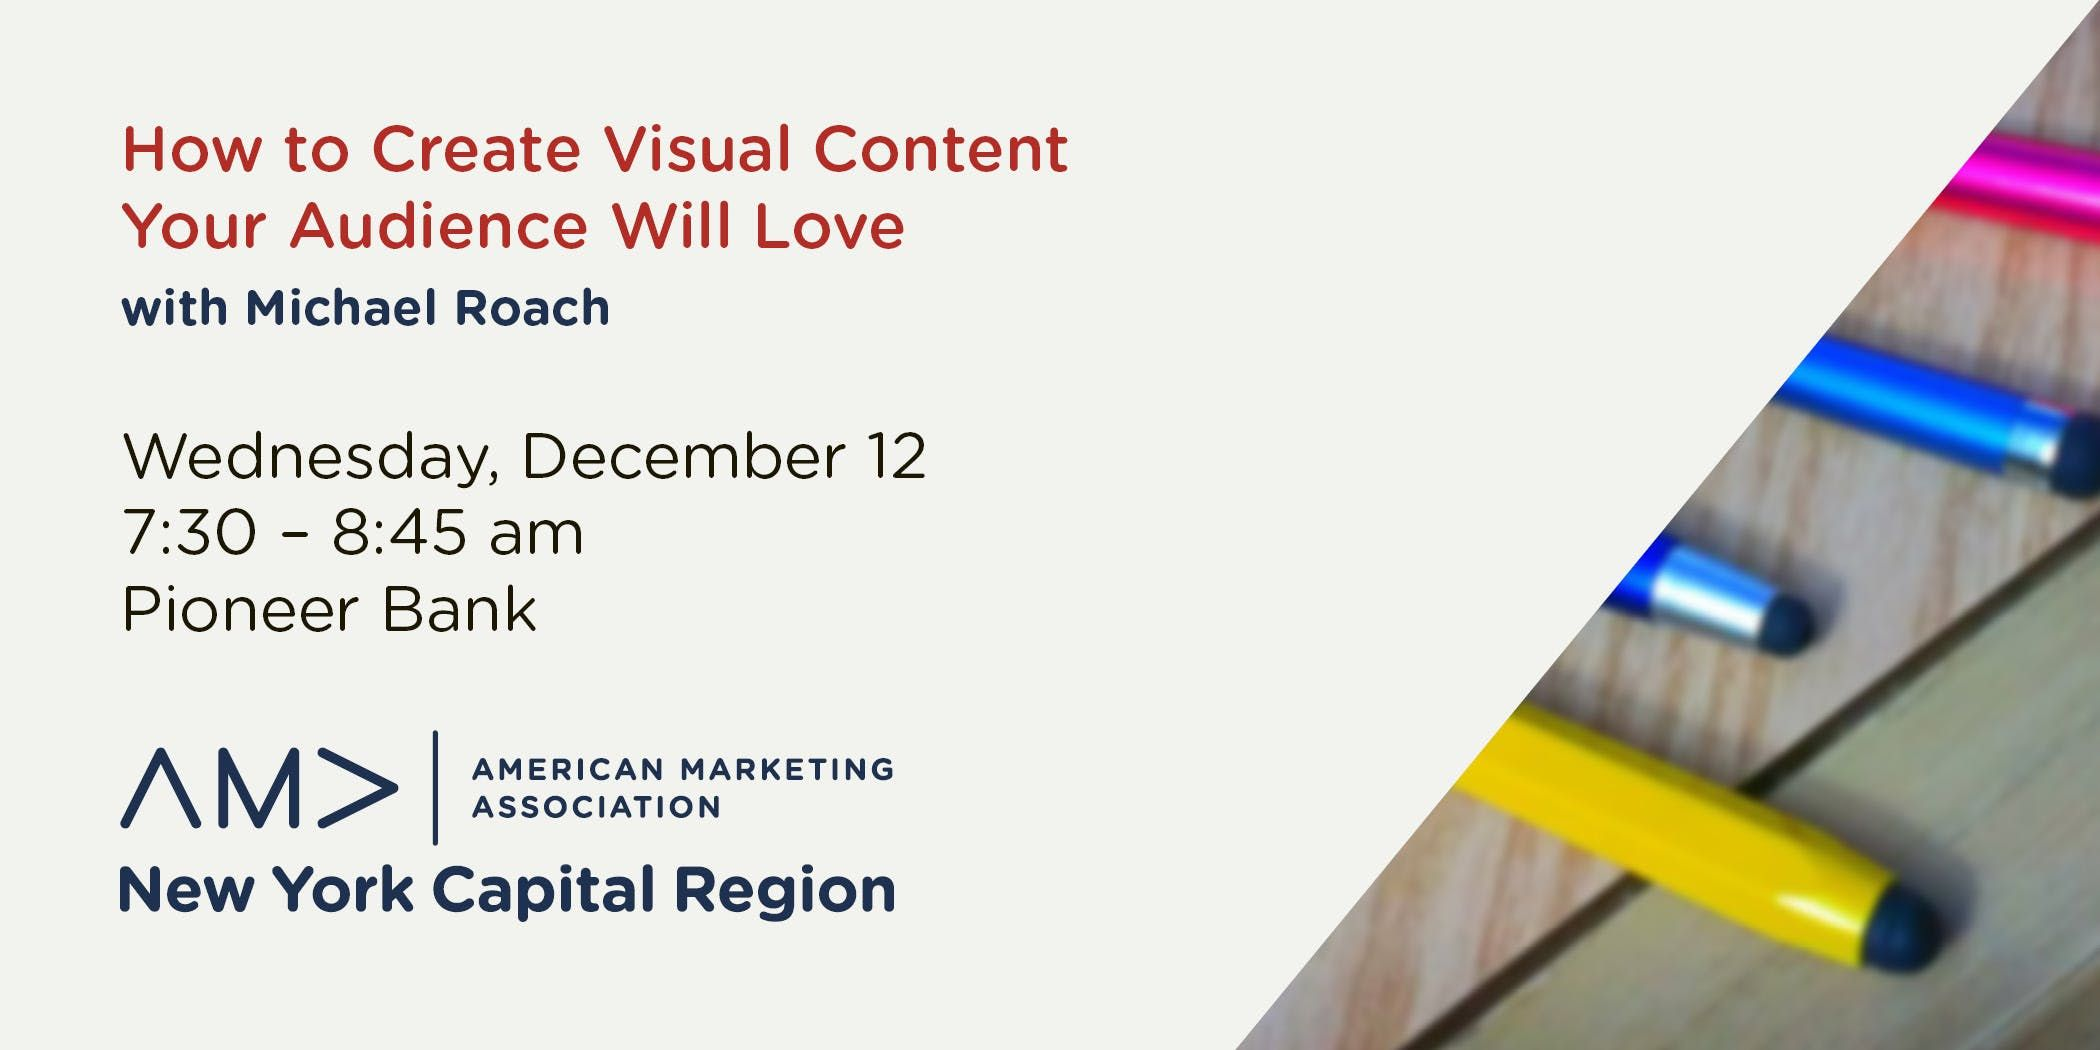 How to Create Visual Content Your Audience Will Love